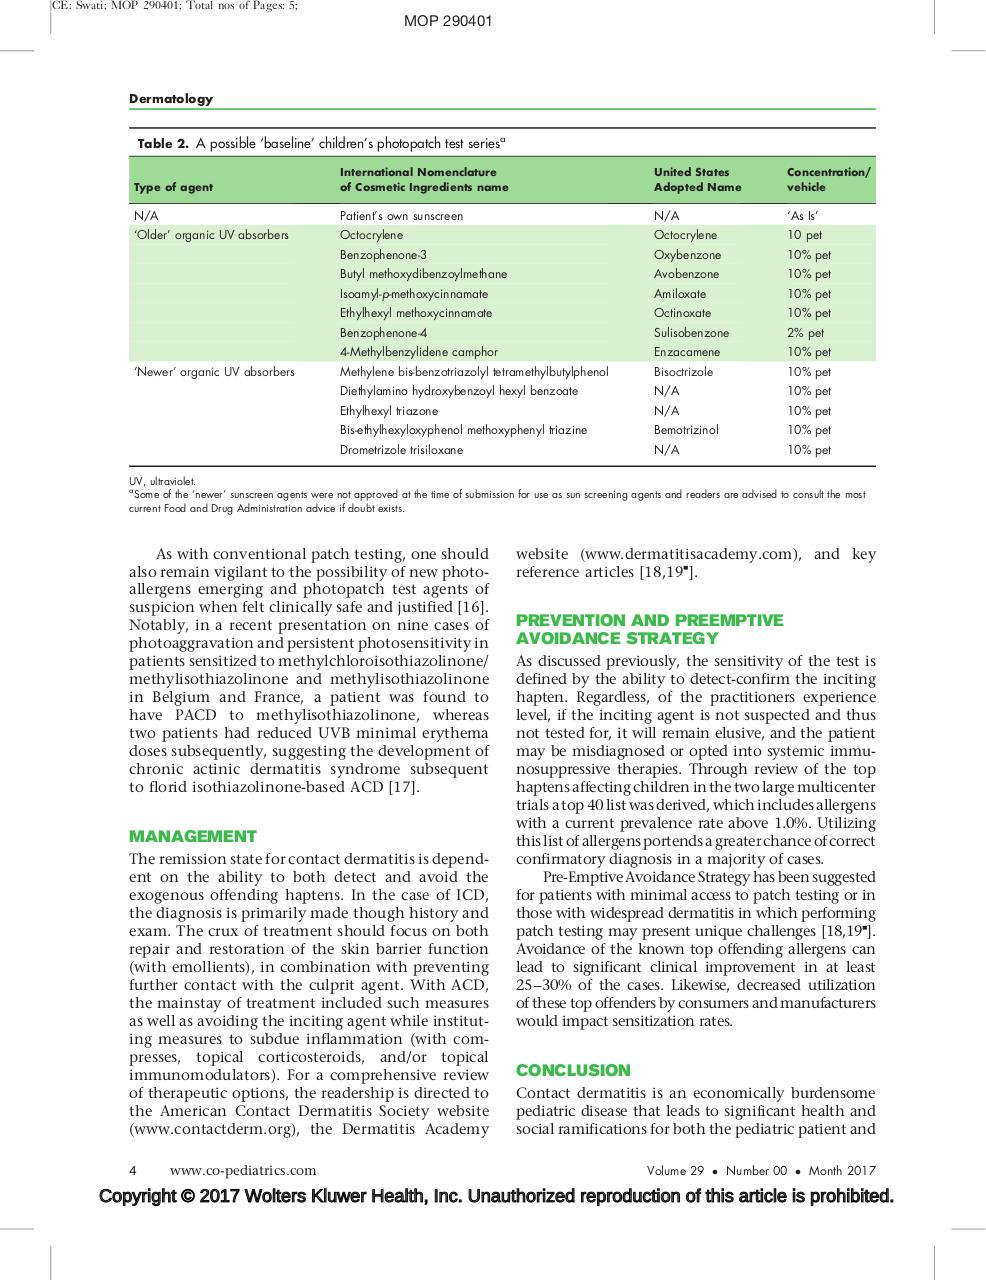 Allergic contact dermatitis.pdf - page 4/5